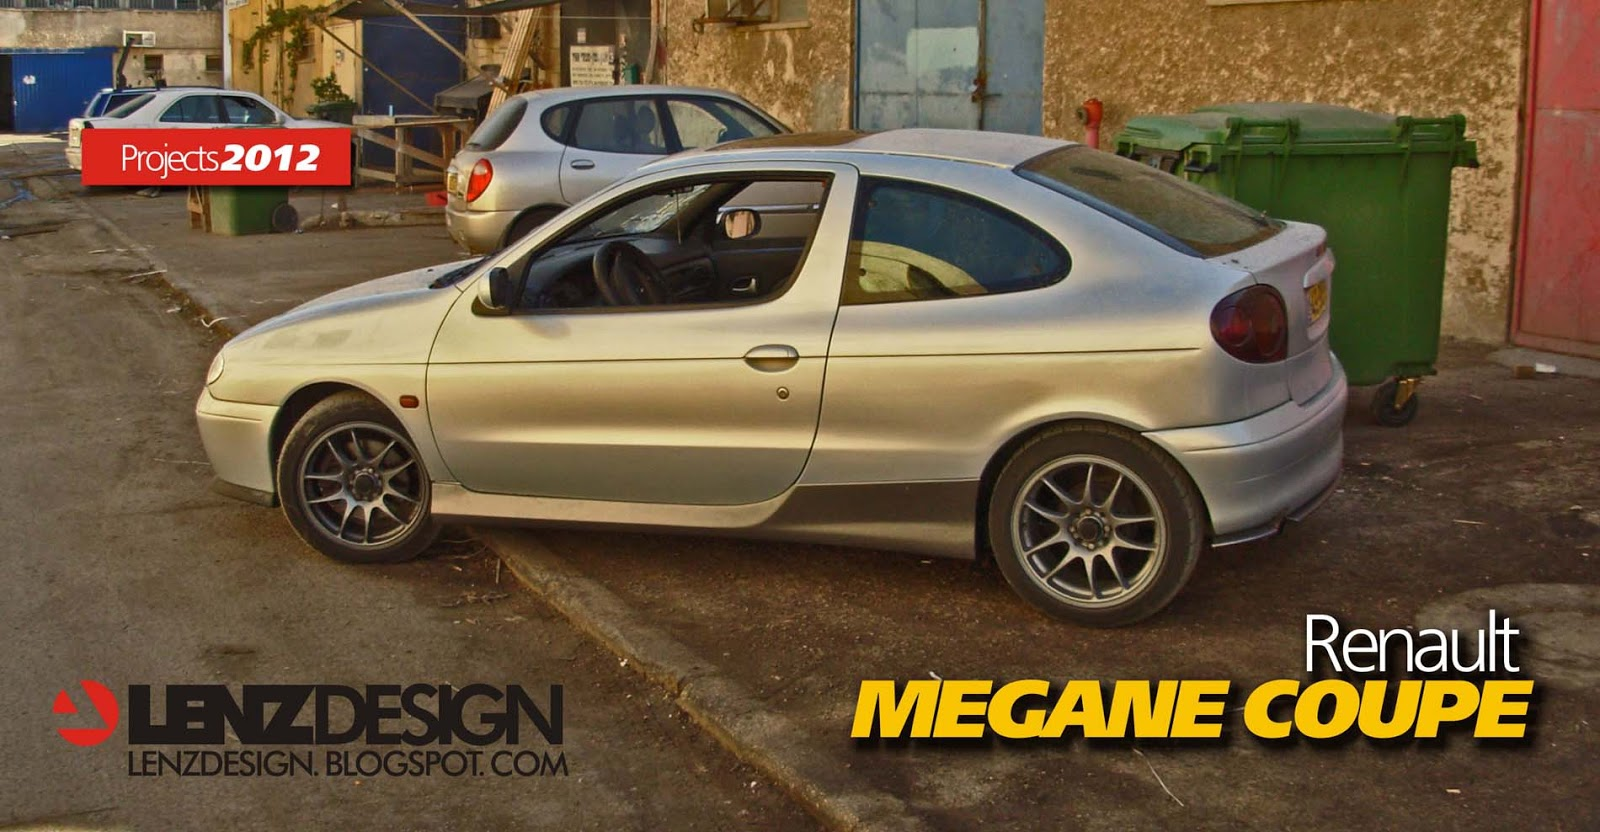 Renault Megane Coupe tuning by Lenzdesign